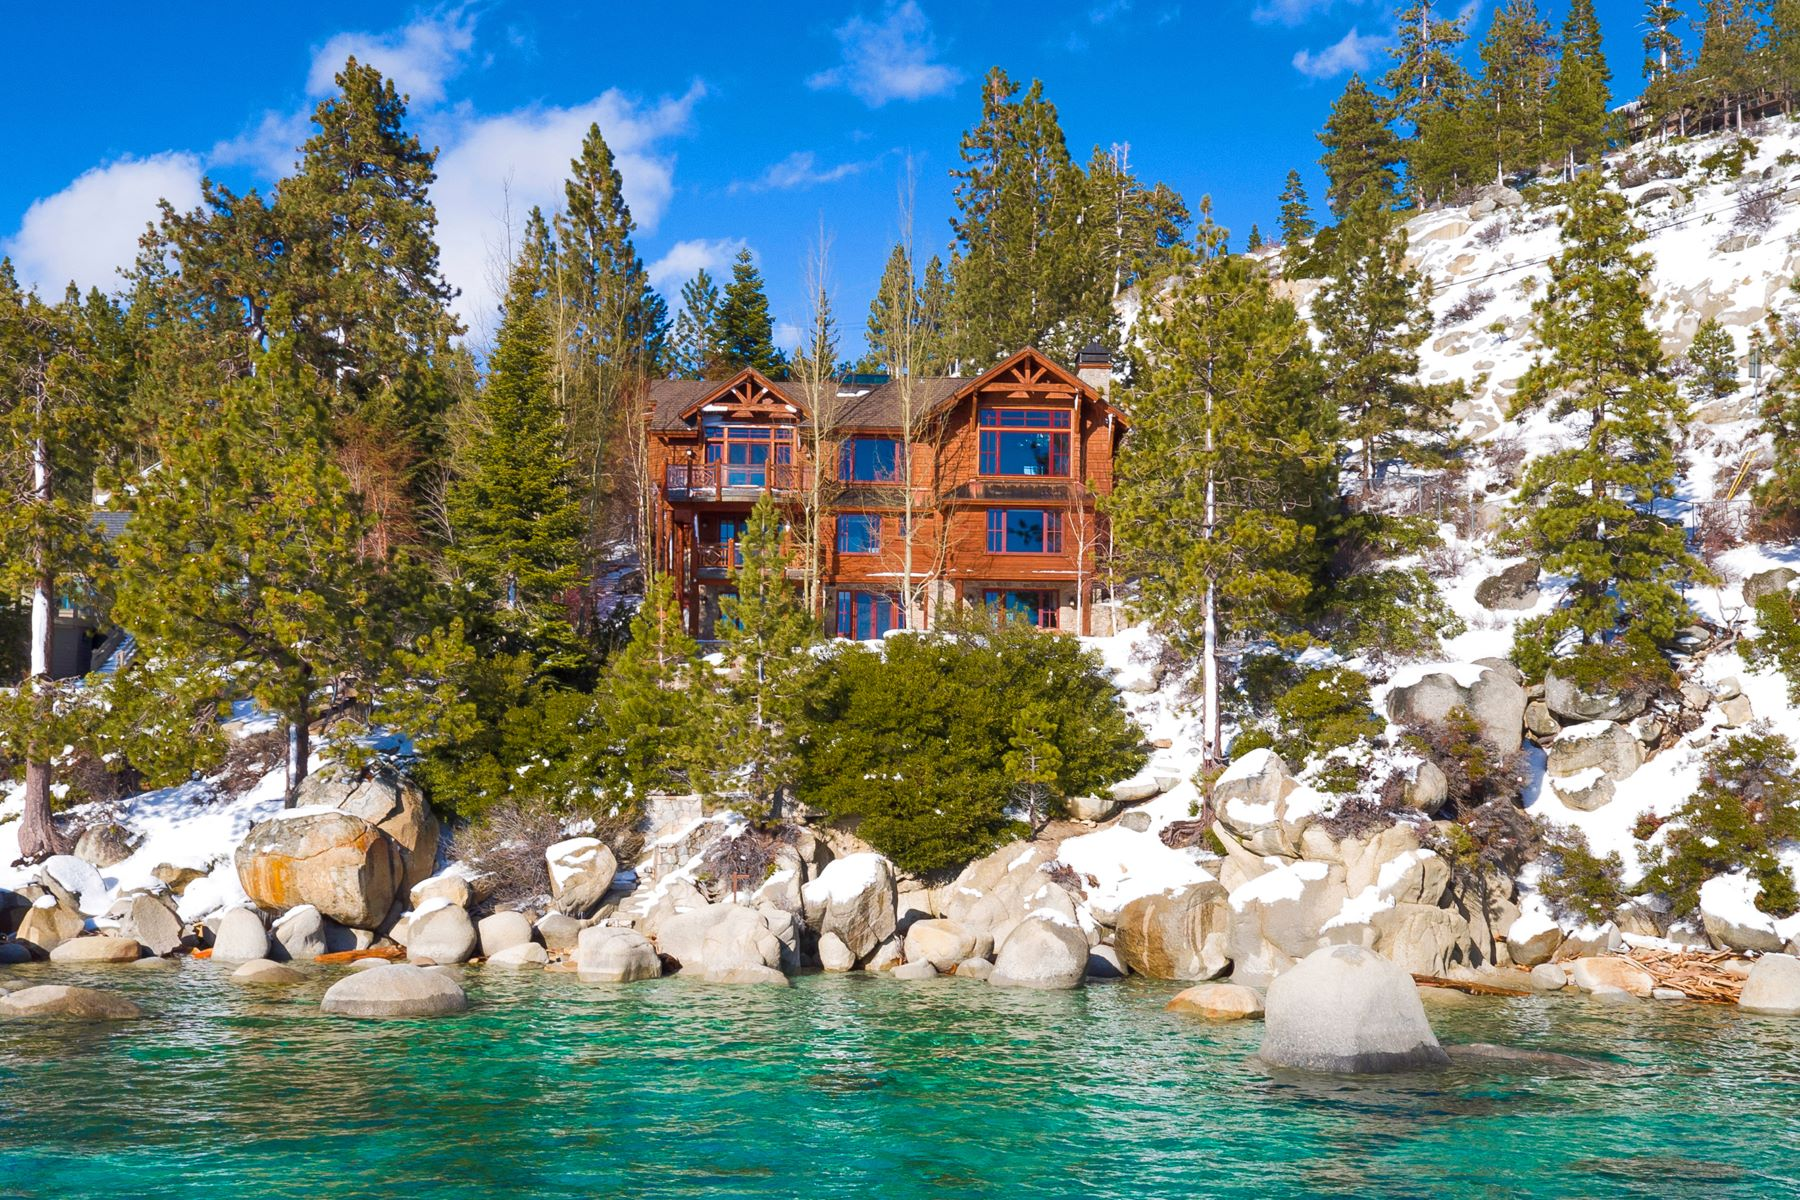 Single Family Homes for Active at Water's Edge 1169 Lakeshore Blvd. Incline Village, Nevada 89451 United States